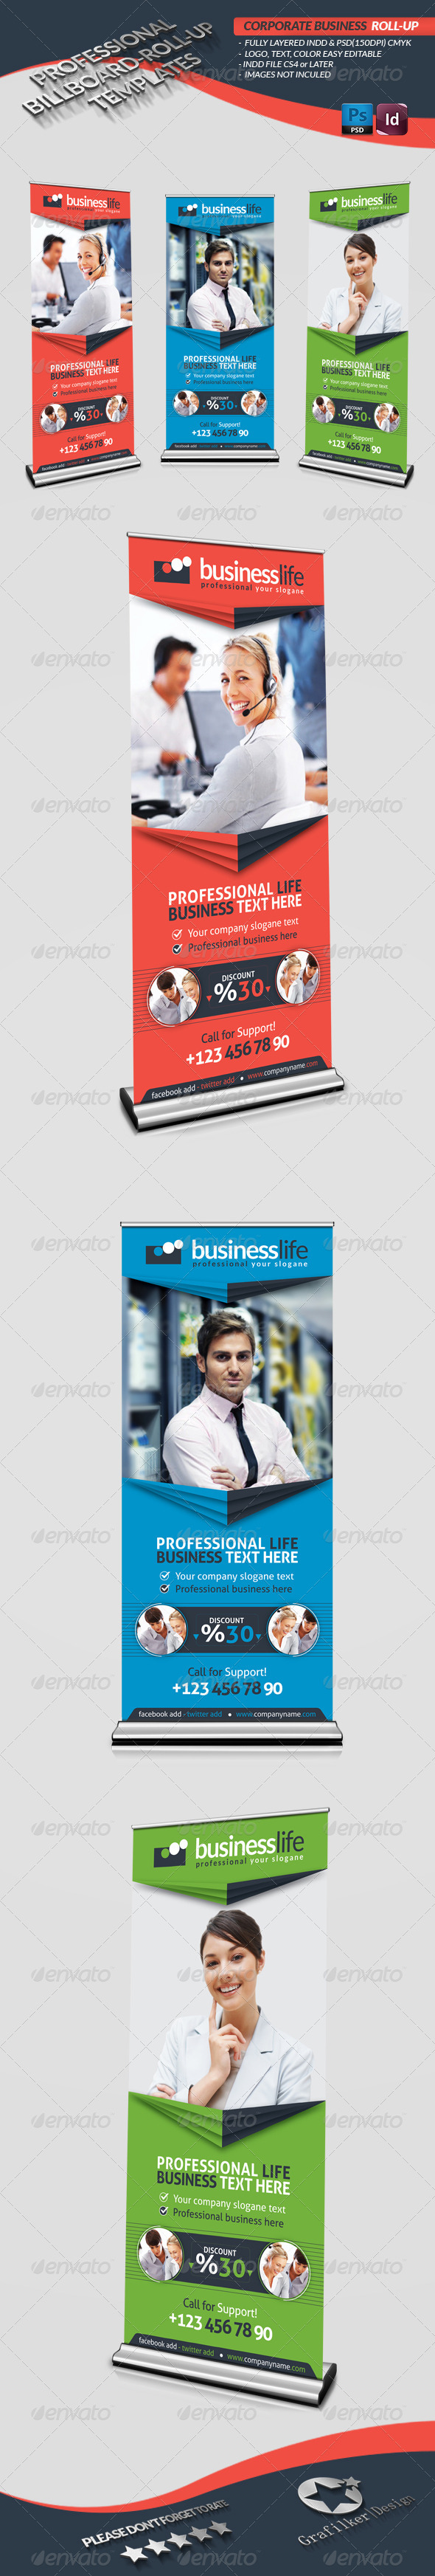 Corporate Business Roll-Up - Signage Print Templates